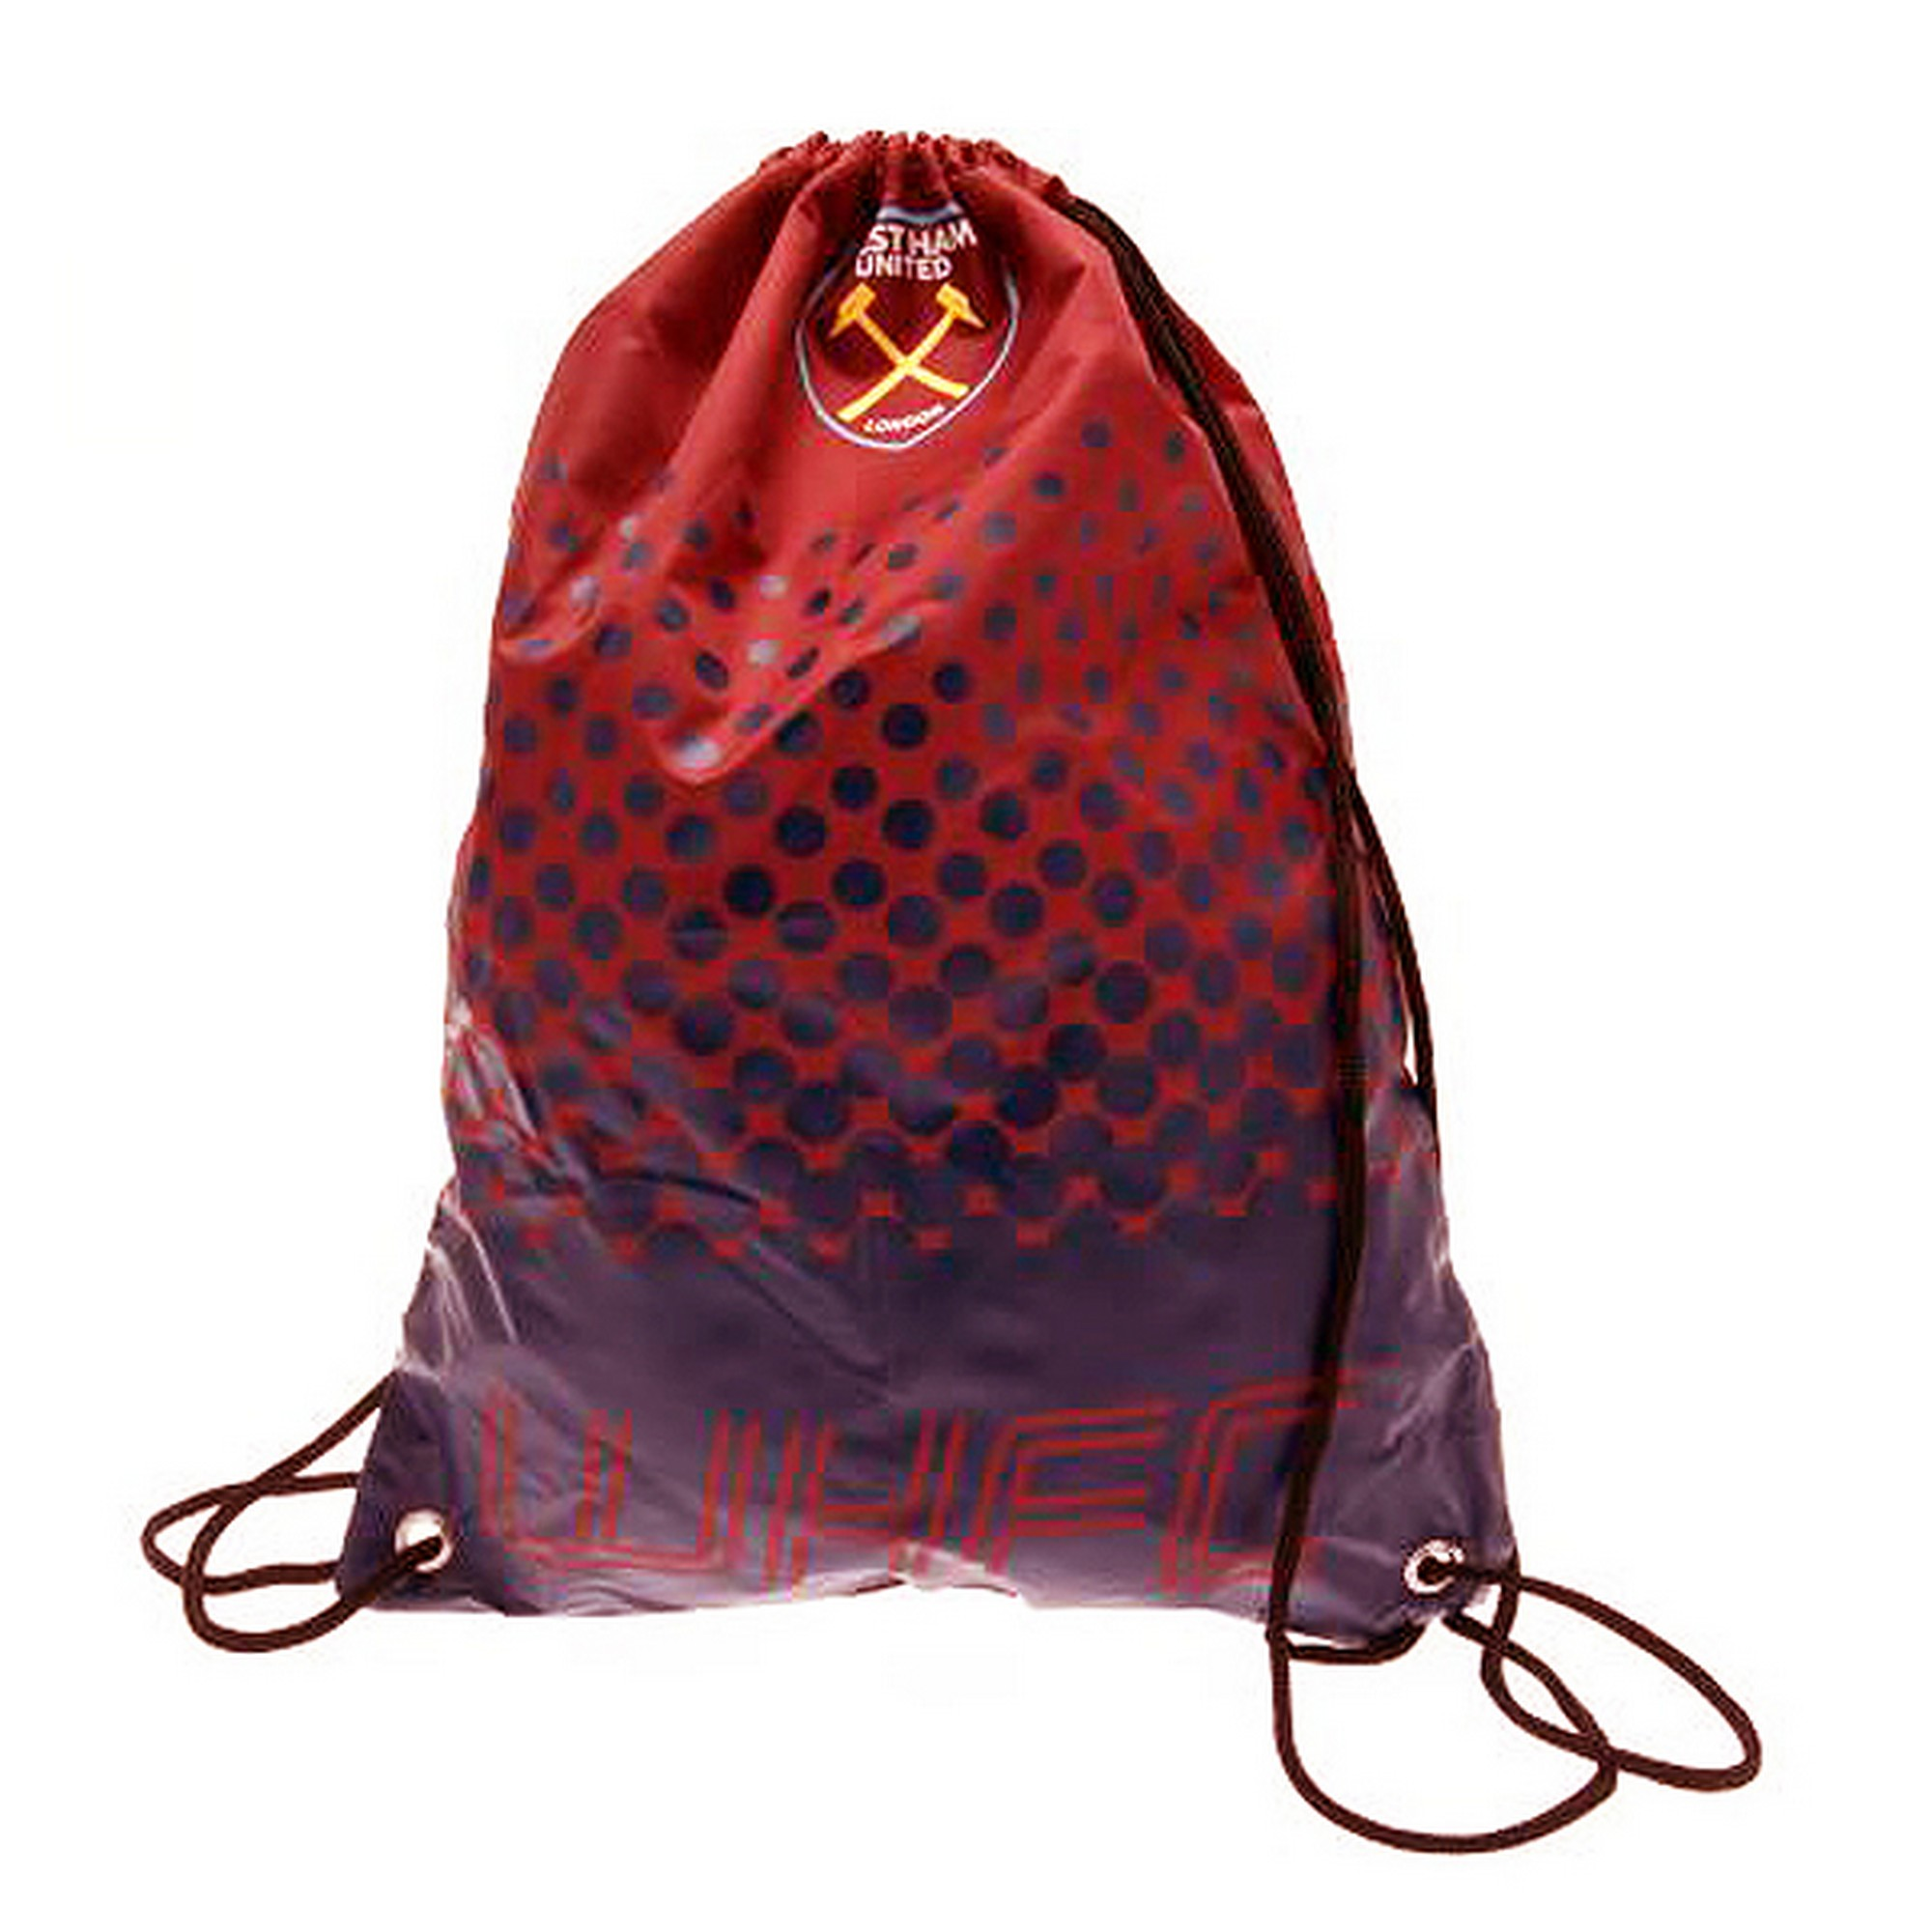 West Ham FC Official Fade Football Crest Drawstring Sports/Gym Bag (One Size) (Red)